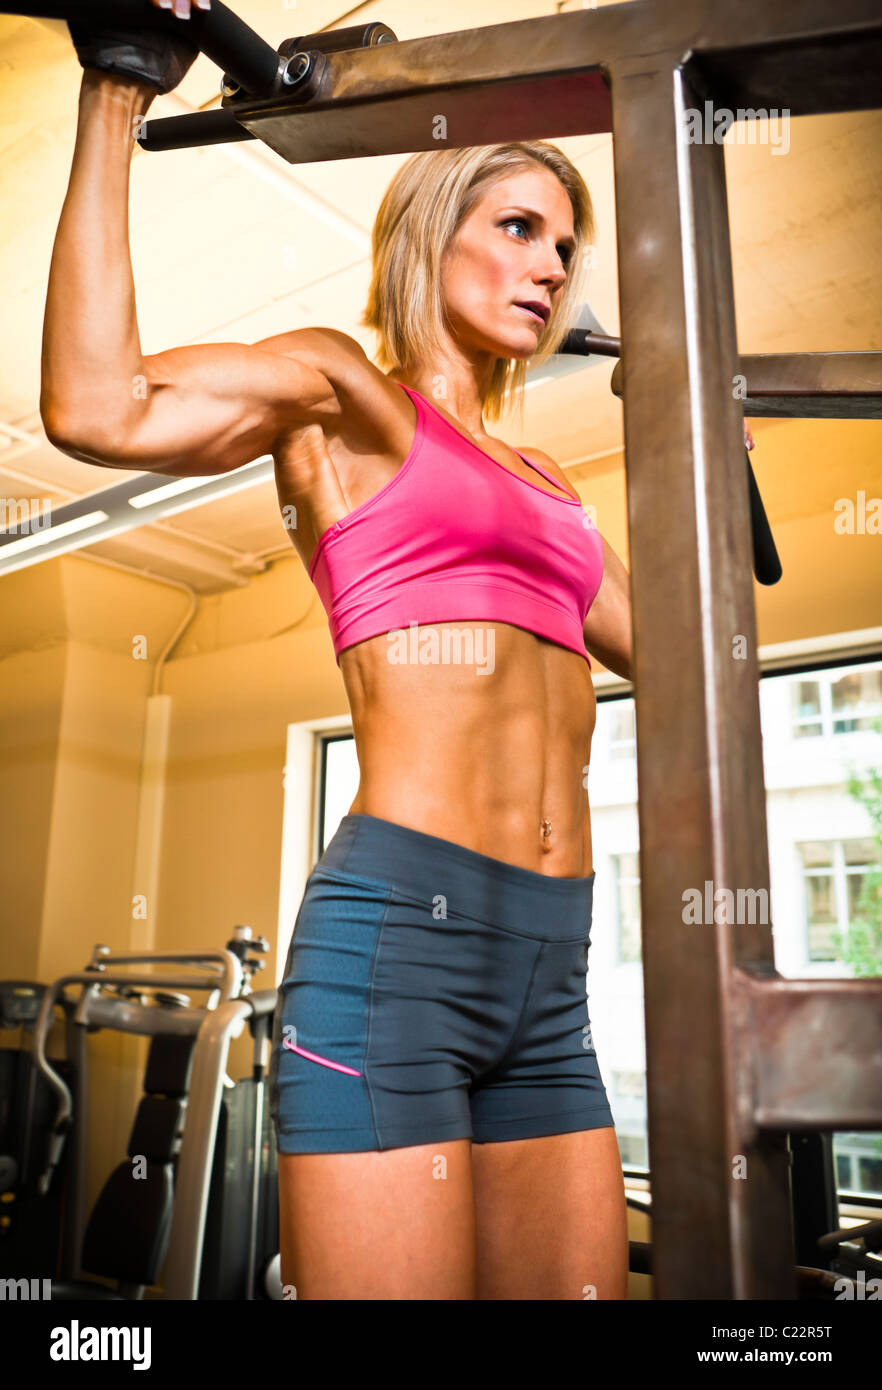 Physically fit woman on a pull-up machine in a health club. - Stock Image